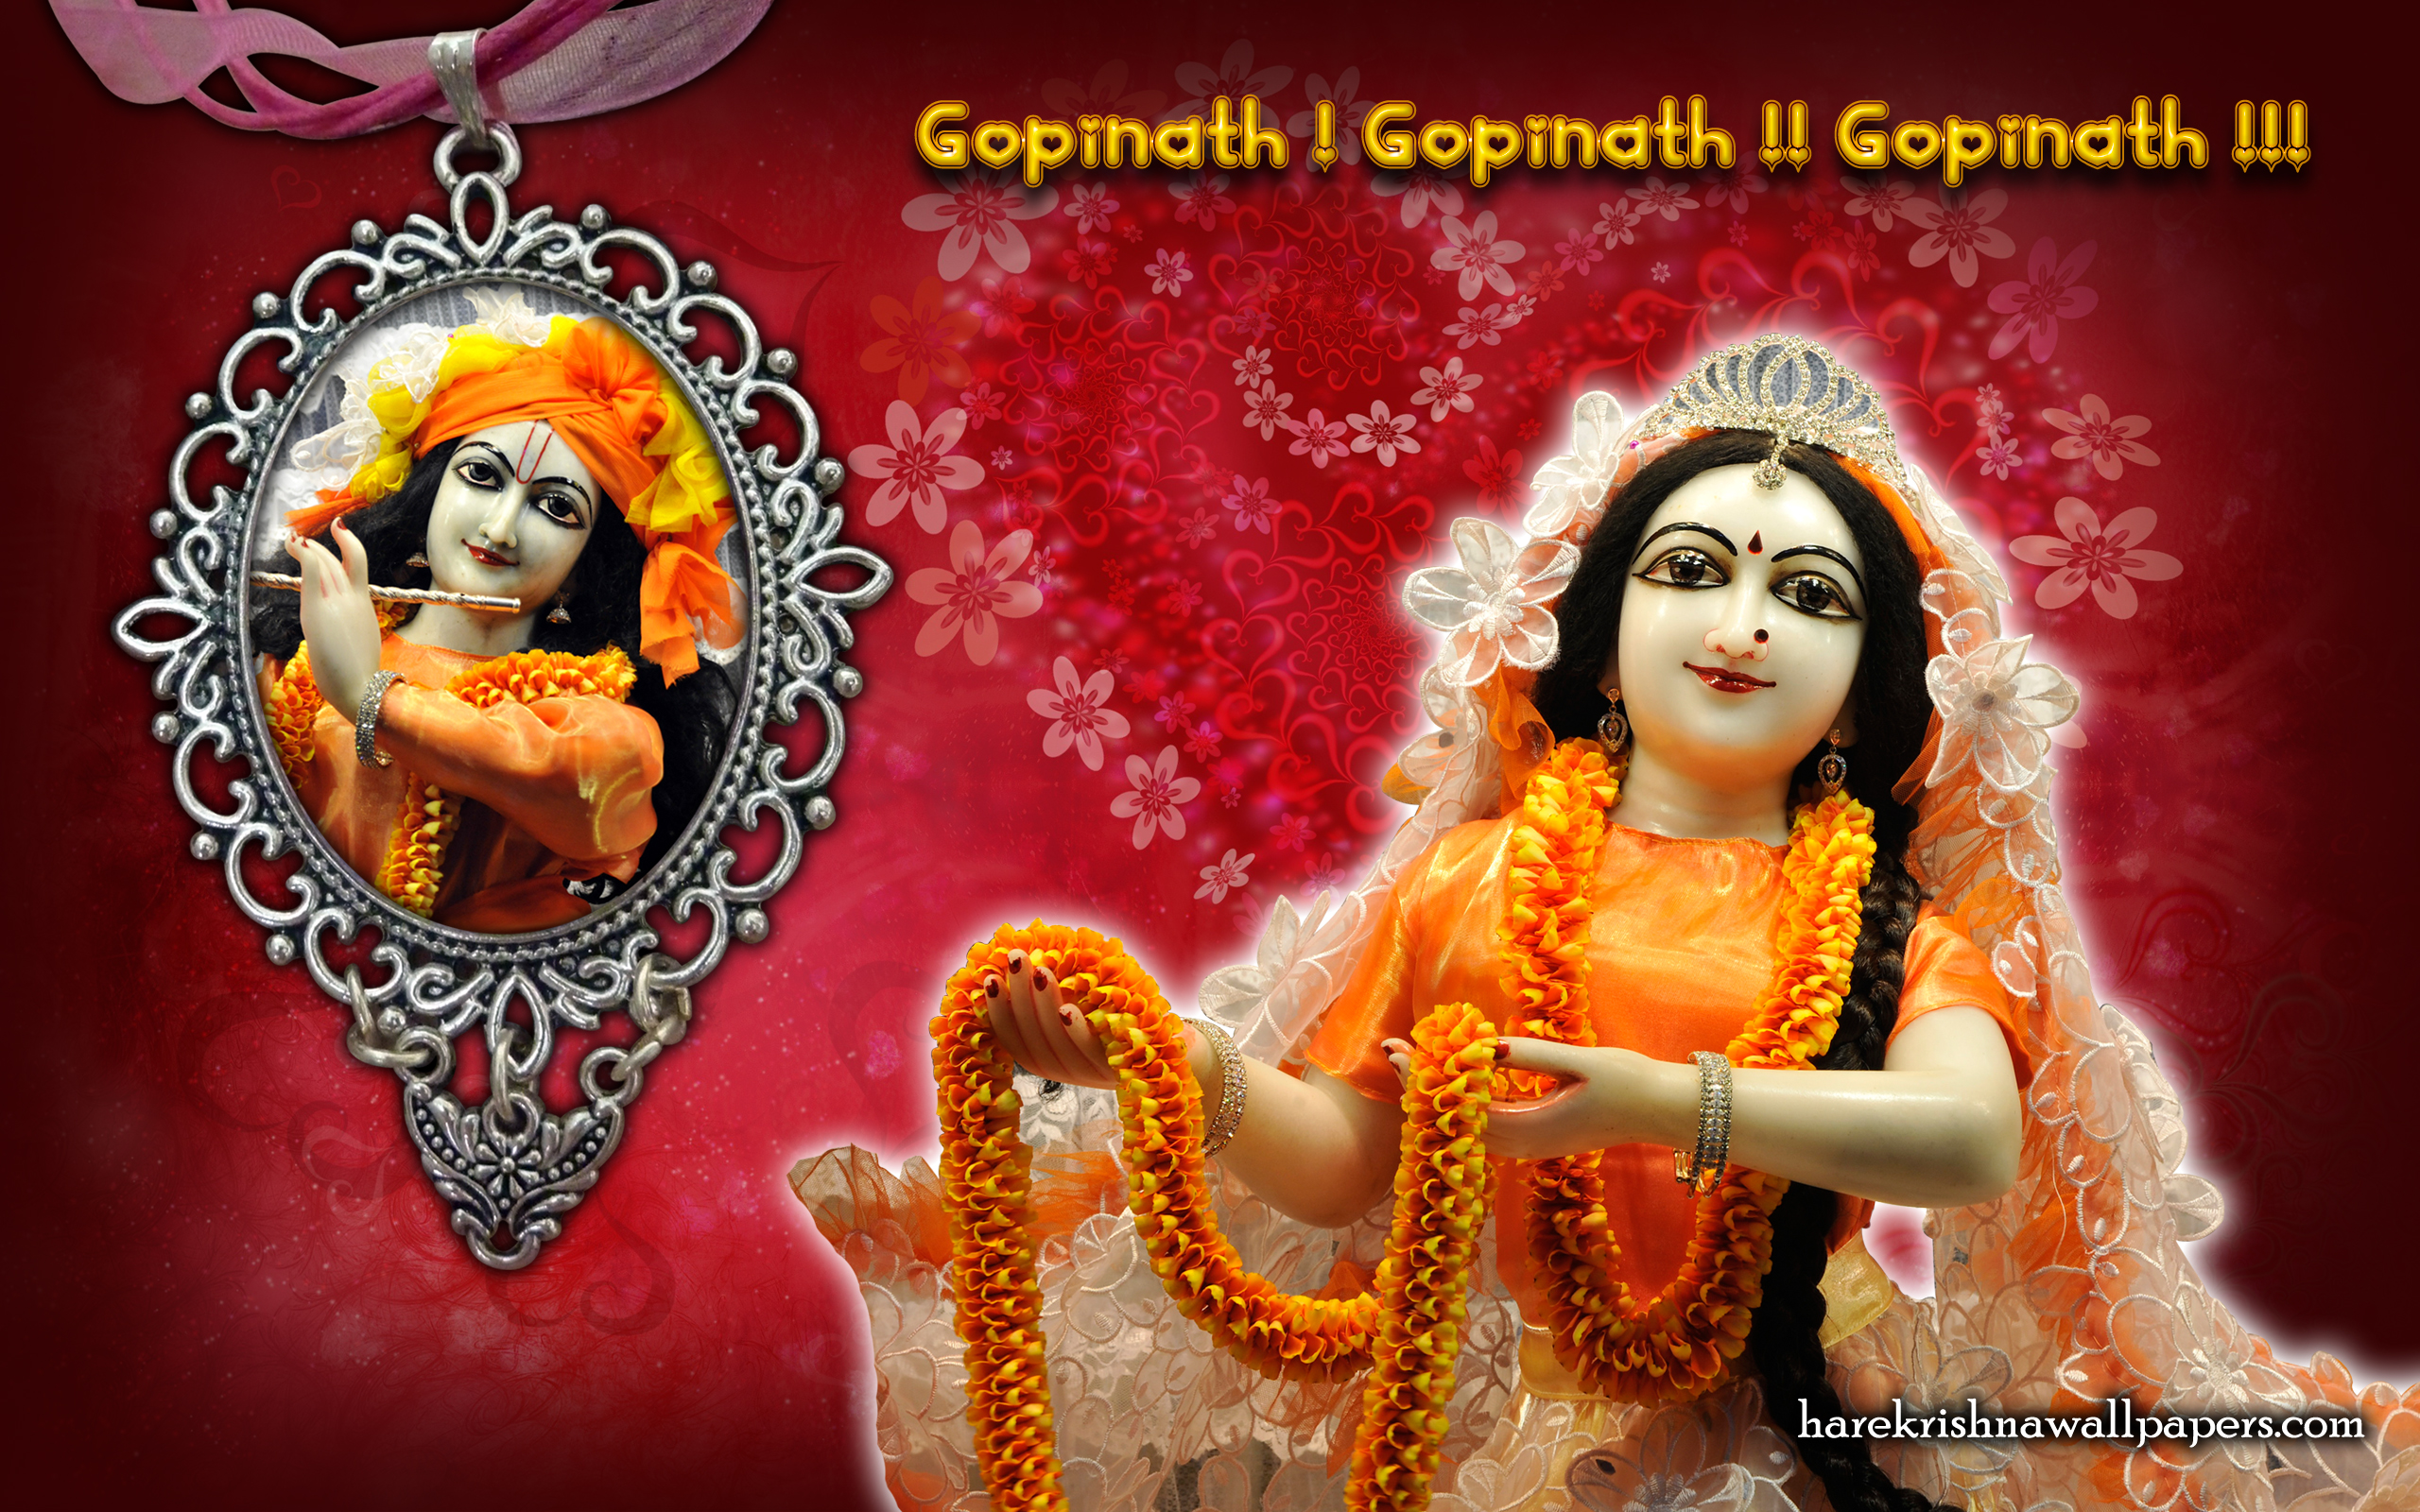 Sri Sri Radha Gopinath Wallpaper (001) Size 2560x1600 Download